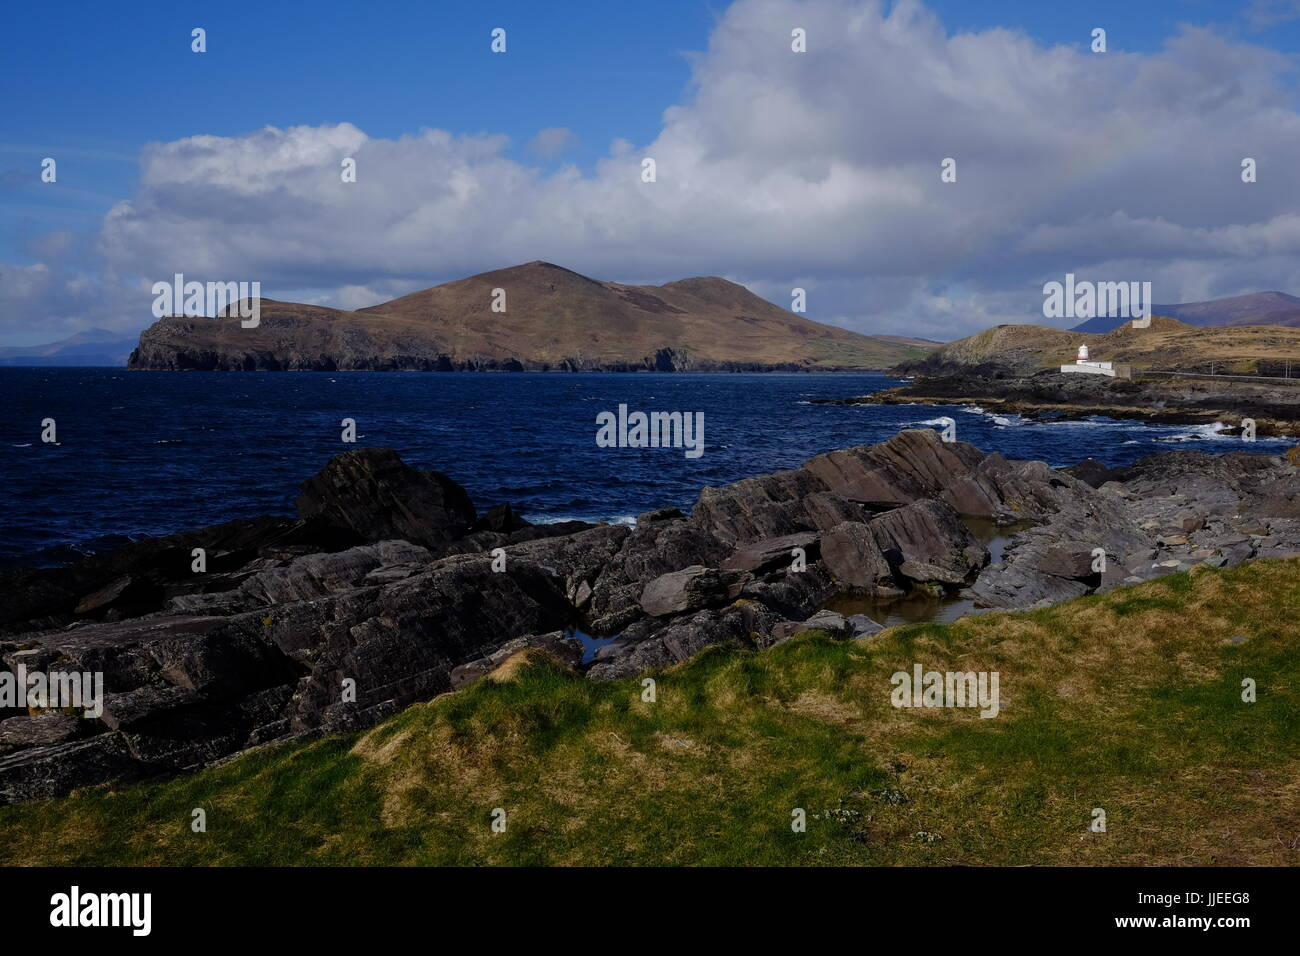 The Valentia Island lighthouse and the rugged coatline and mountains in County Kerry, Ireland - Stock Image